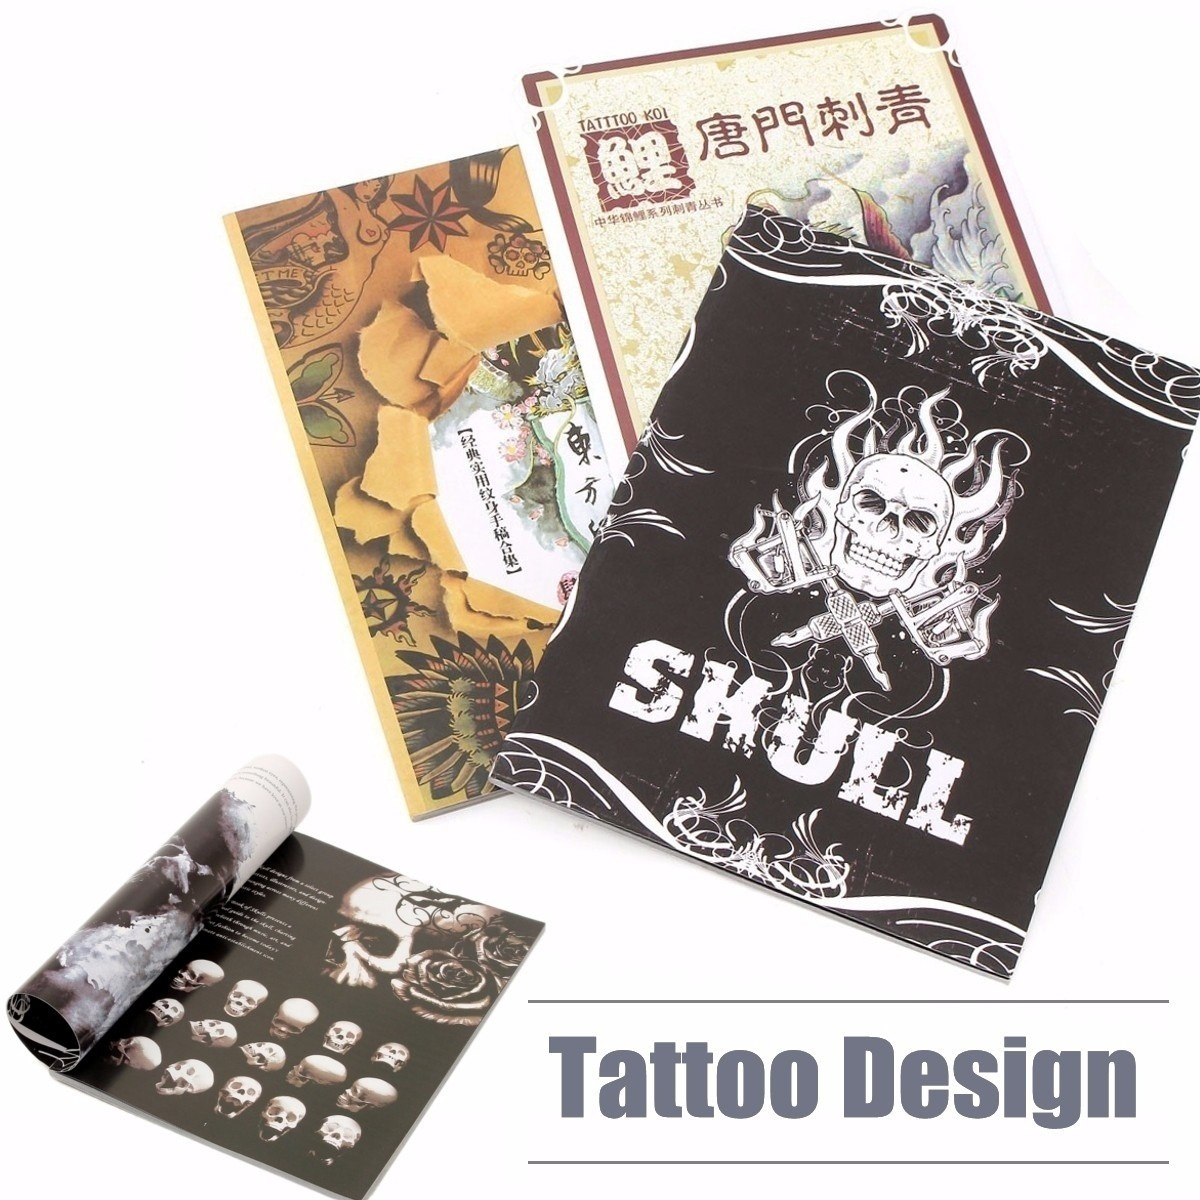 Qoo10 Cool Tattoo Design Ideas References Book Manuscript Body Art For Men W Diet Styling